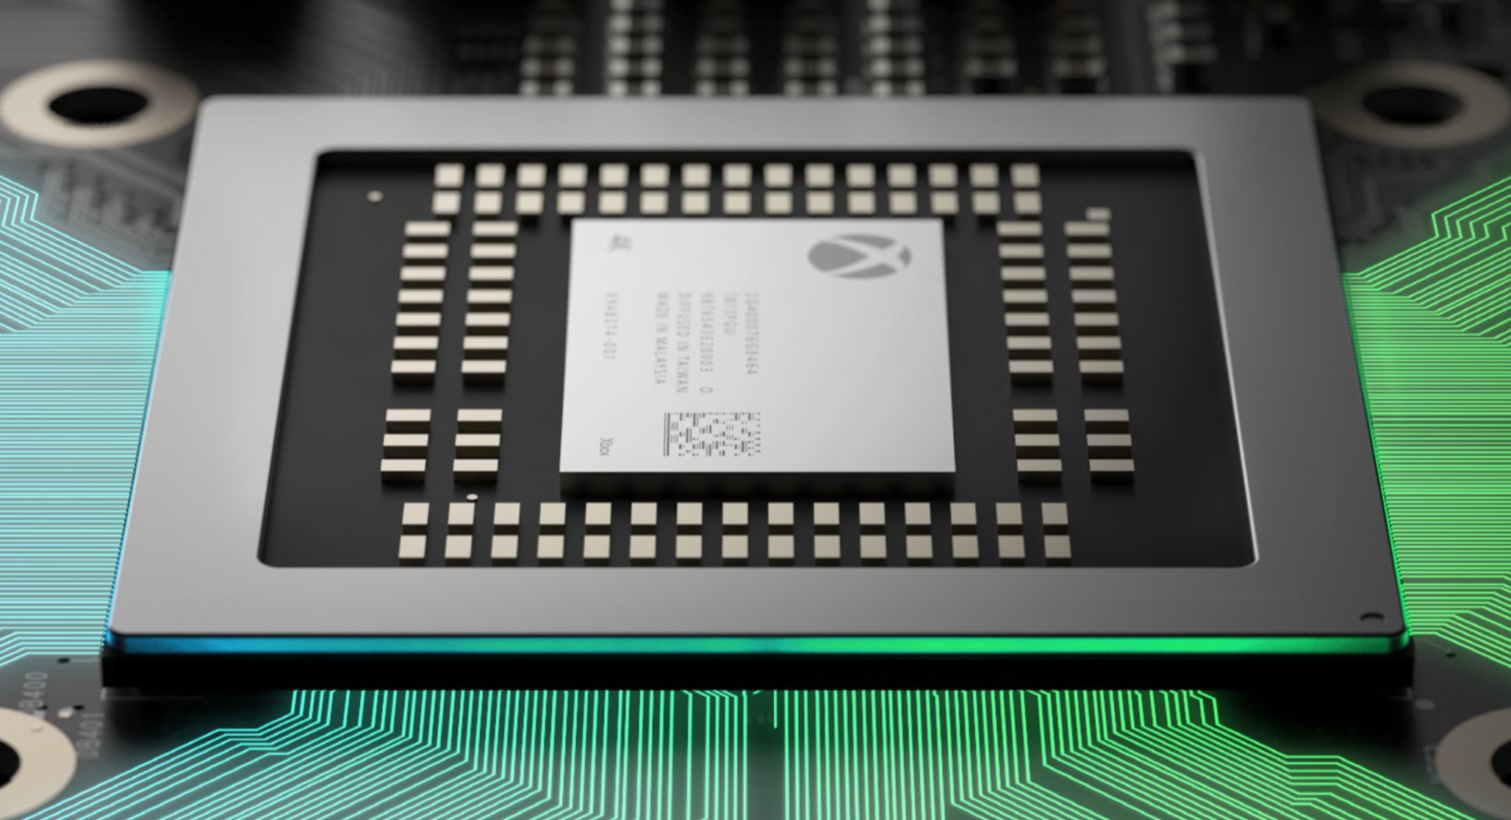 Microsoft releases Xbox Project Scorpio specs - it's the most powerful console ever